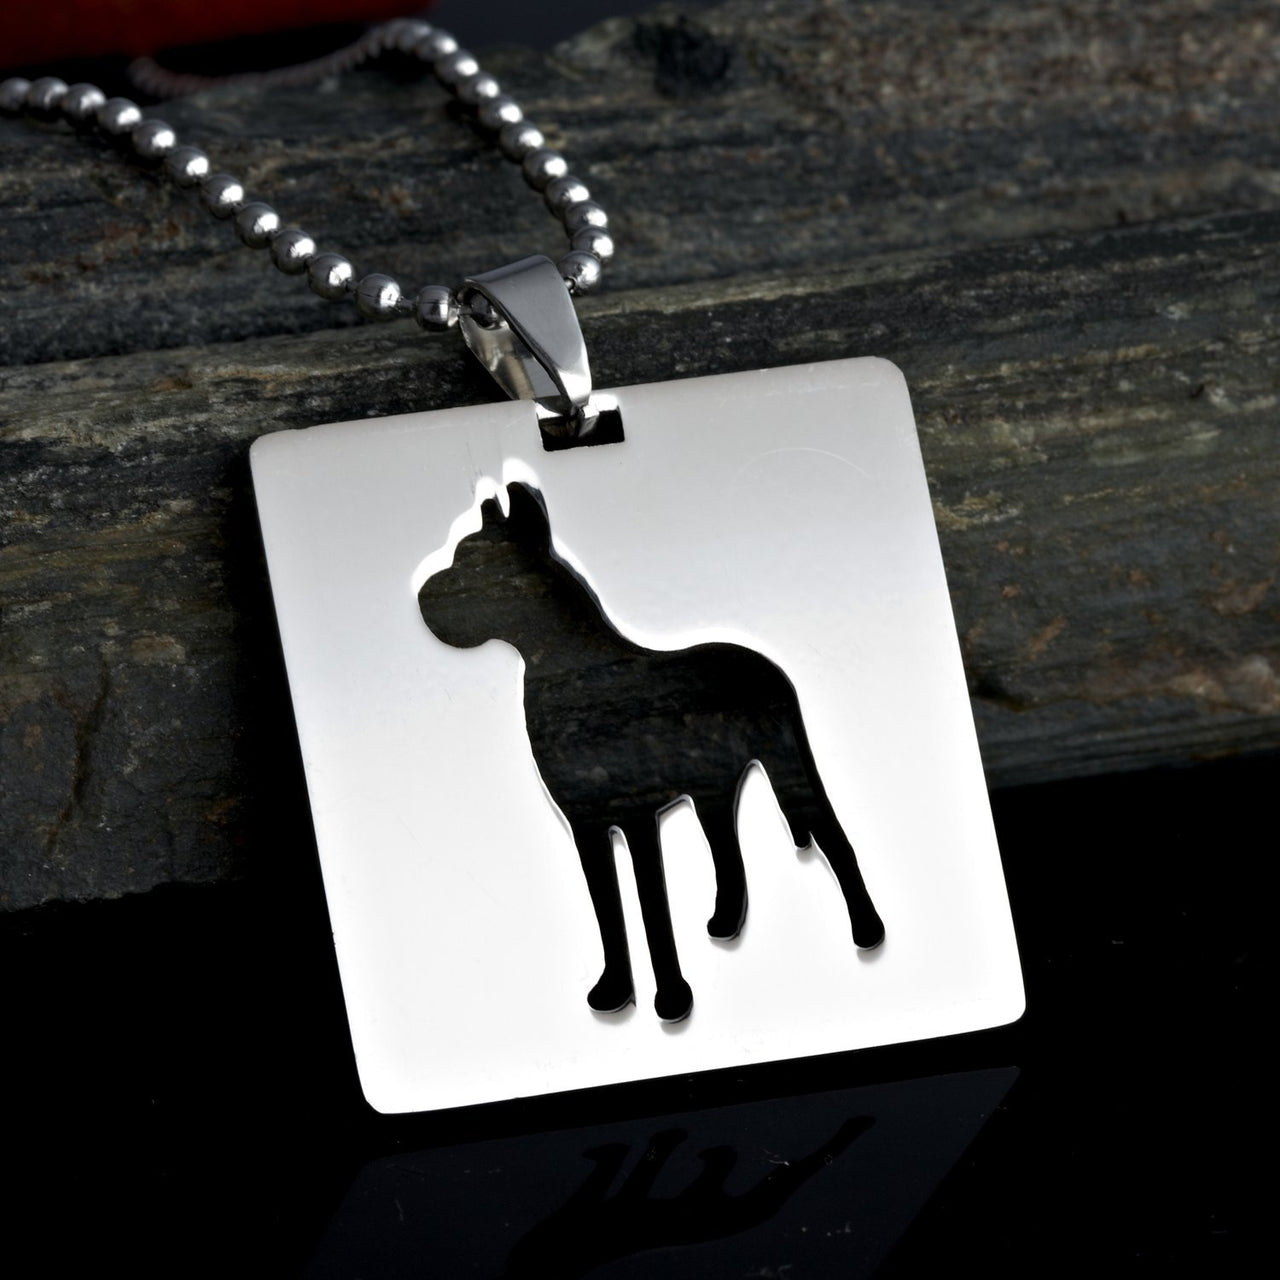 2x Stainless Steel Square Shape Great Dane Silhouette Gentle Giant Deutsche Dogge German Mastiff Pet Dog Tag Collar Jewelry Charm Pendant Necklace